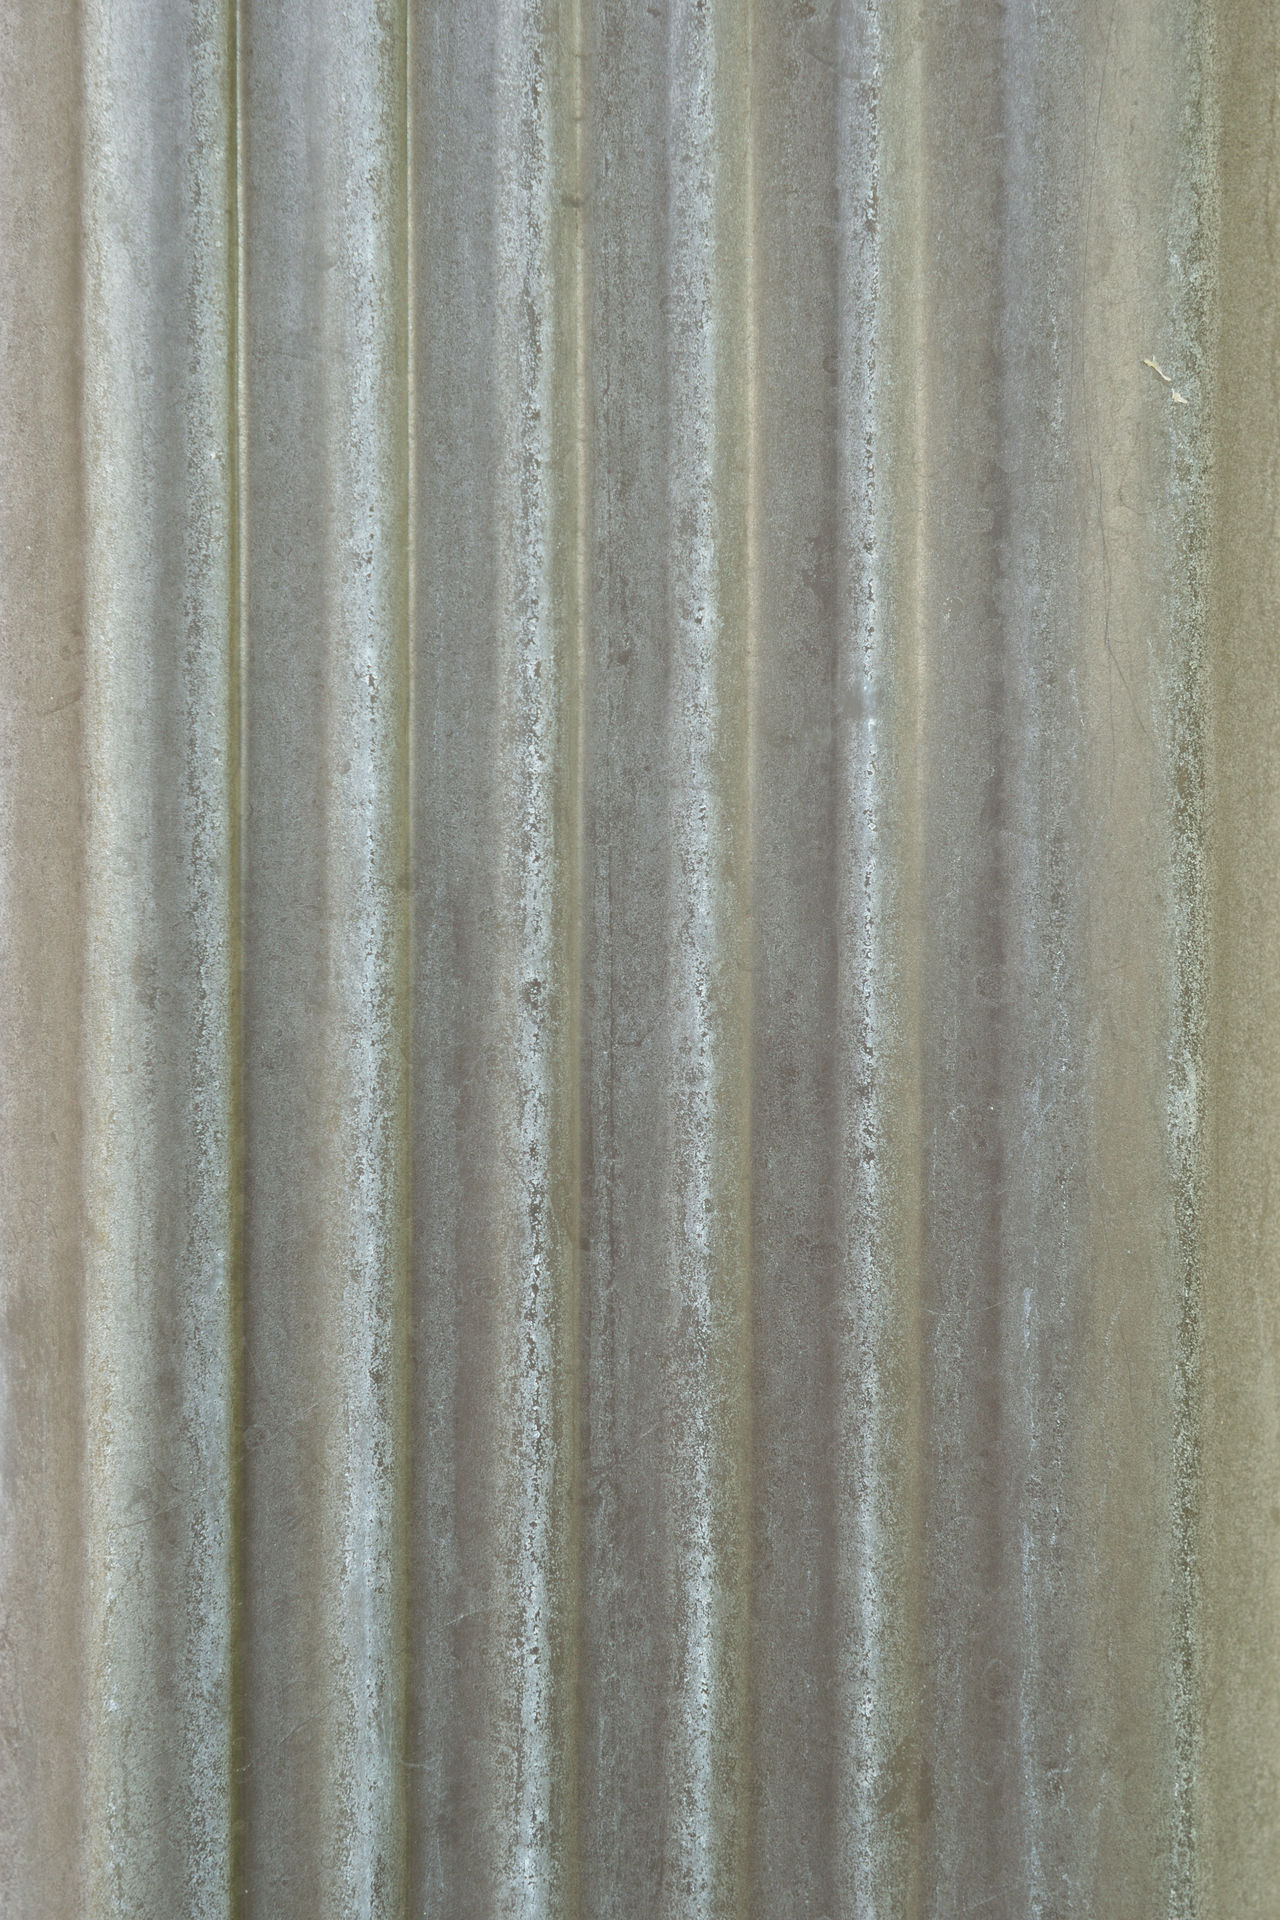 Vertical gray colored downspout. Background Bumpy Coarse Downspout Gray Rough Texture Vertical Vertical Lines